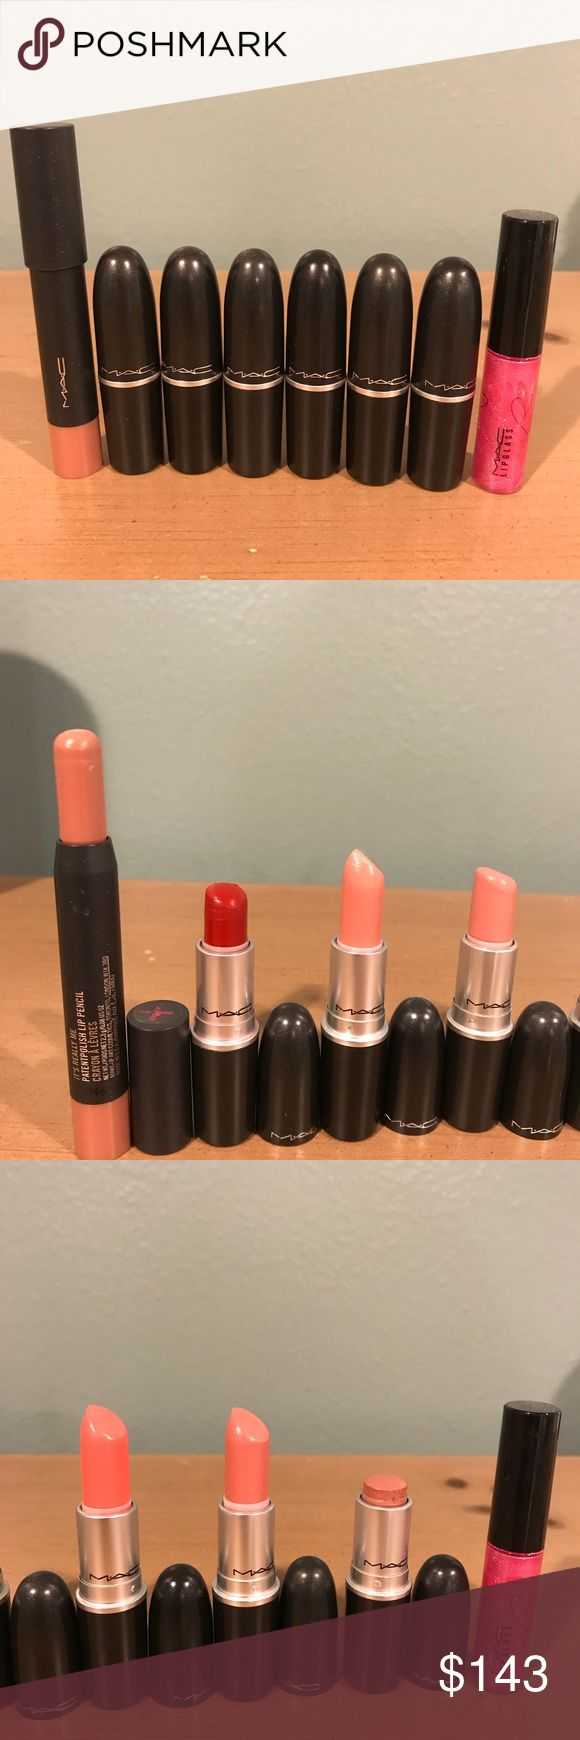 MAC Lipstick Bundle This listing is for 8 Mac Cosmetics lip products. 100% authentic, selling because I hardly wear makeup. 6 Lipsticks, retail $17.50 each, 1 lipglass, retails $17, and 1 patentpolish lip pencil, retails $21. Bundle value $143. Colors are it's really me, viva glam, modesty, peach blossom, coral bliss, creme cup, give in, MAC red. Modesty, lipglass, MAC red have significant use, others have been hardly used. Pics 2/3 show product left. Please ask any questions prior to…